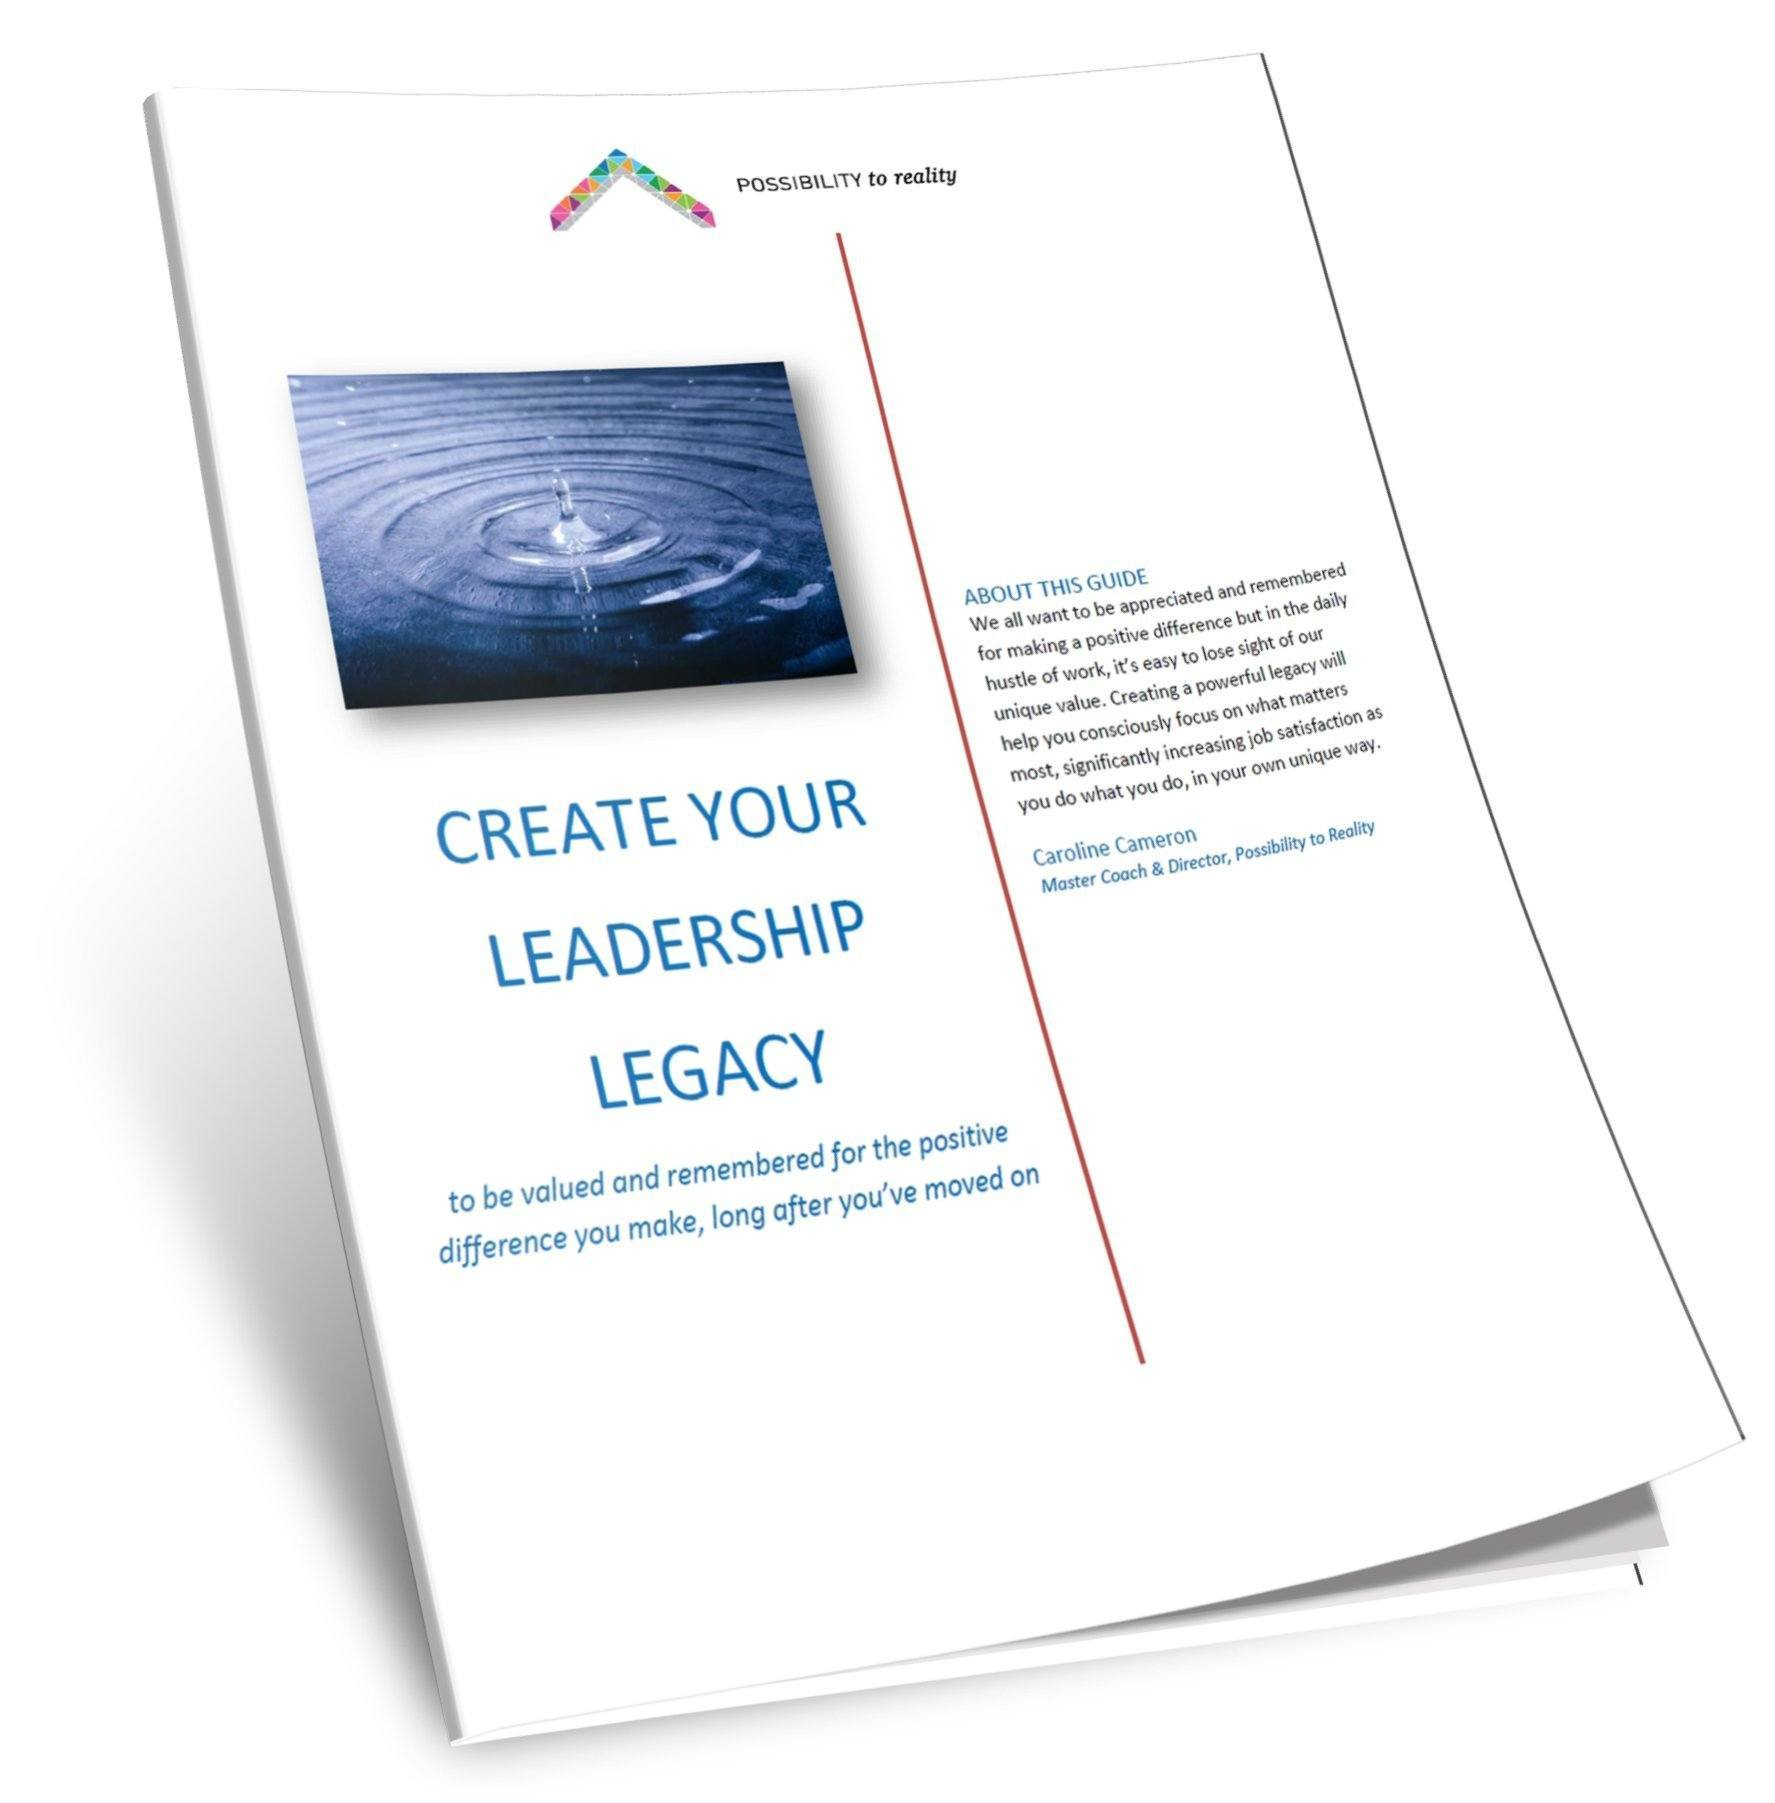 How to Create YOUR Leadership Legacy